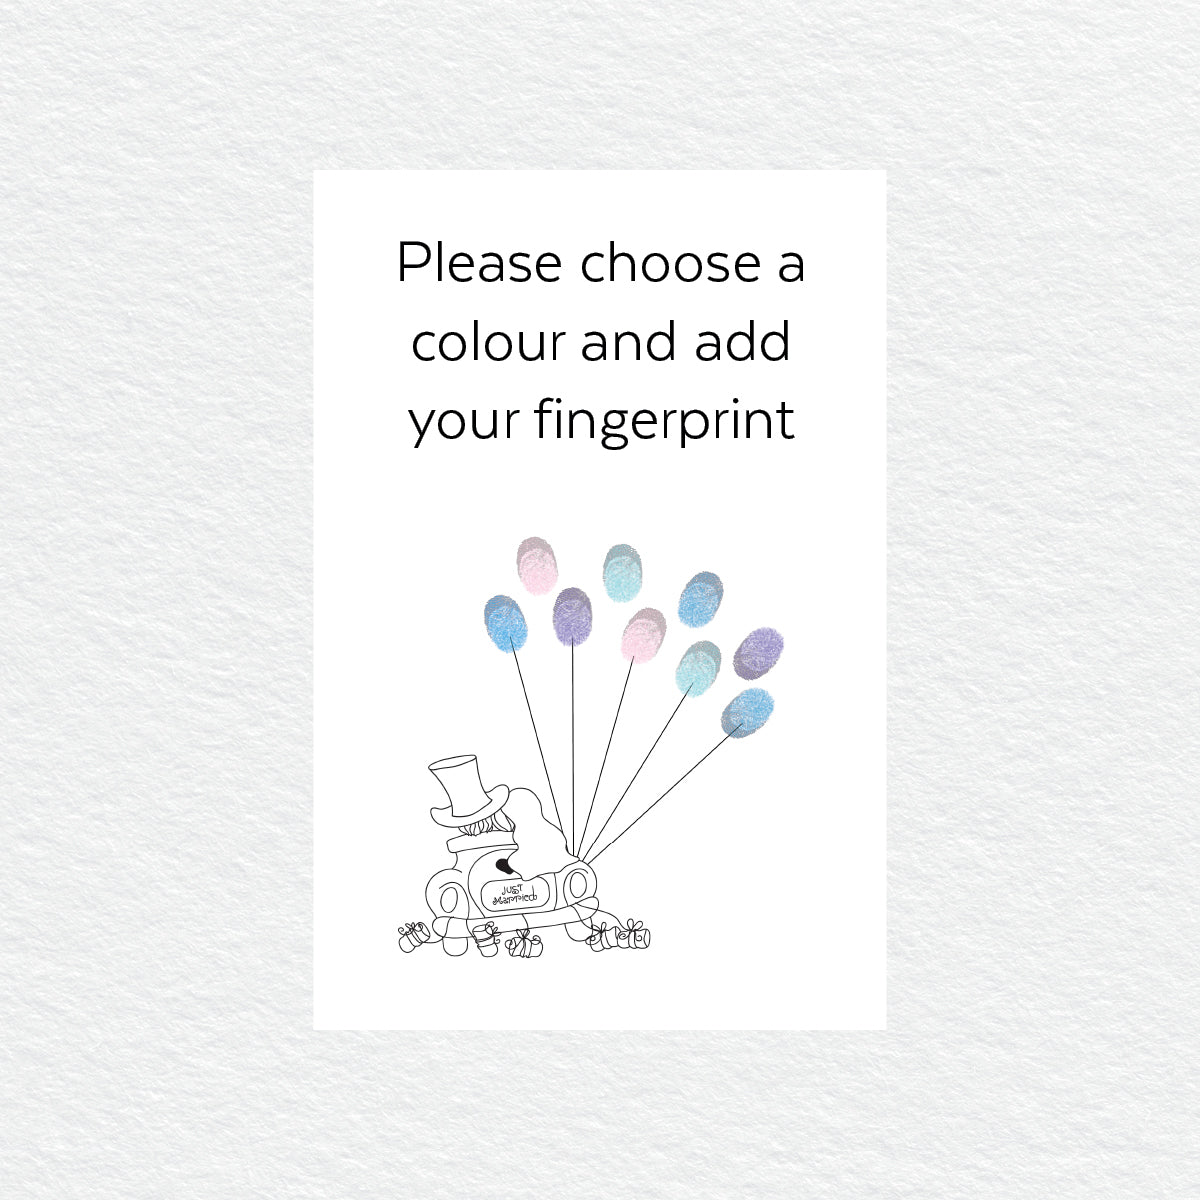 Just Married Balloon Fingerprint Kit